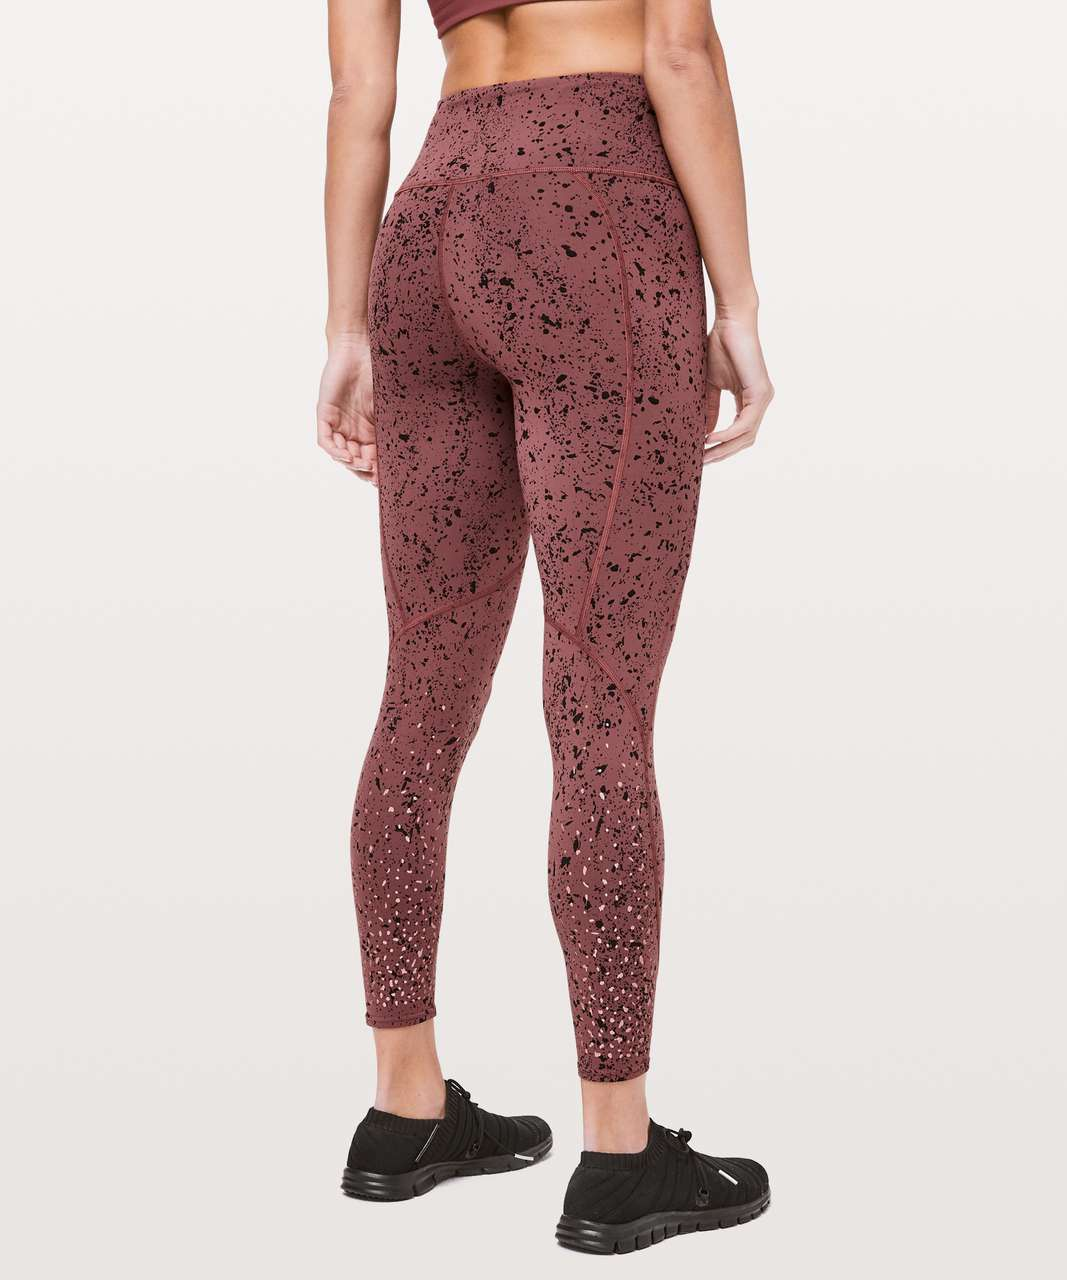 "Lululemon To The Beat Tight Reflective 24"" *lululemon X SoulCycle - Tempo Splatter Adobe Dust Black"